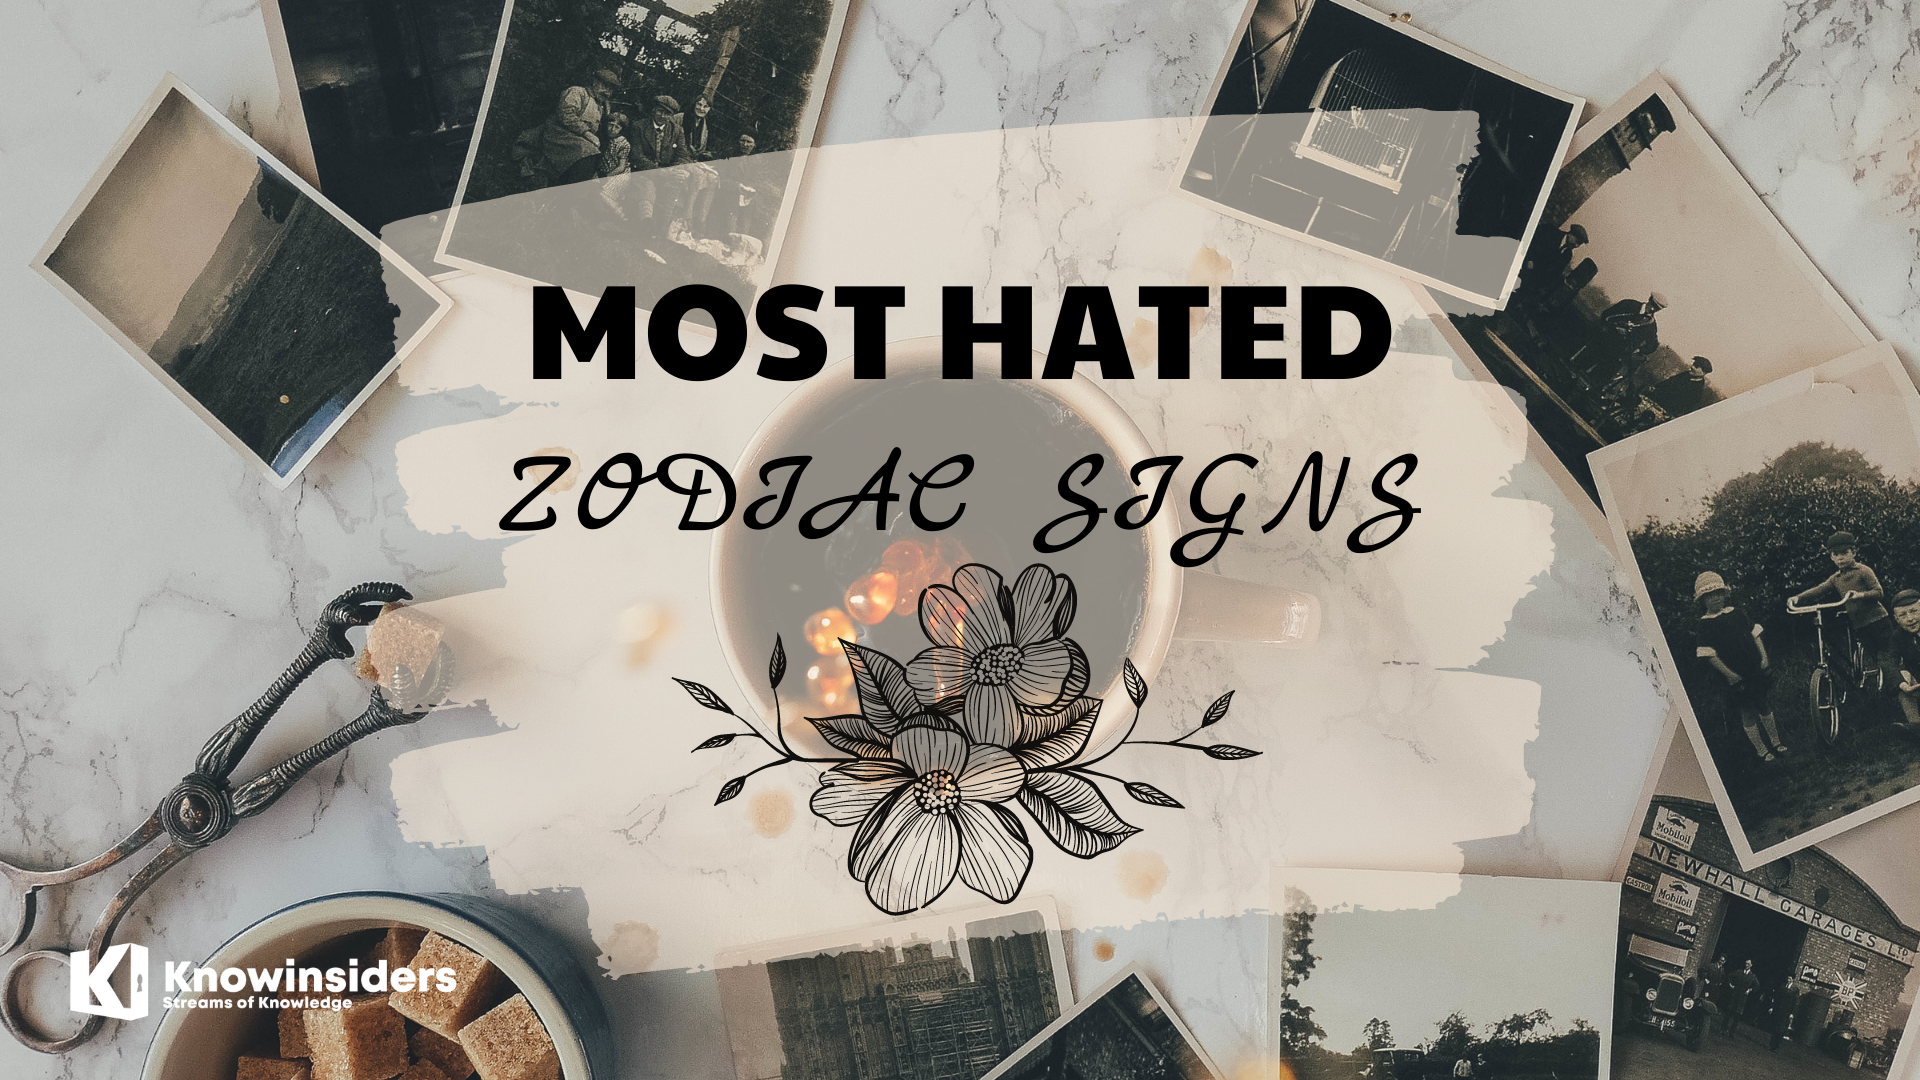 Top 5 Most Hated Zodiac Signs According to Astrology